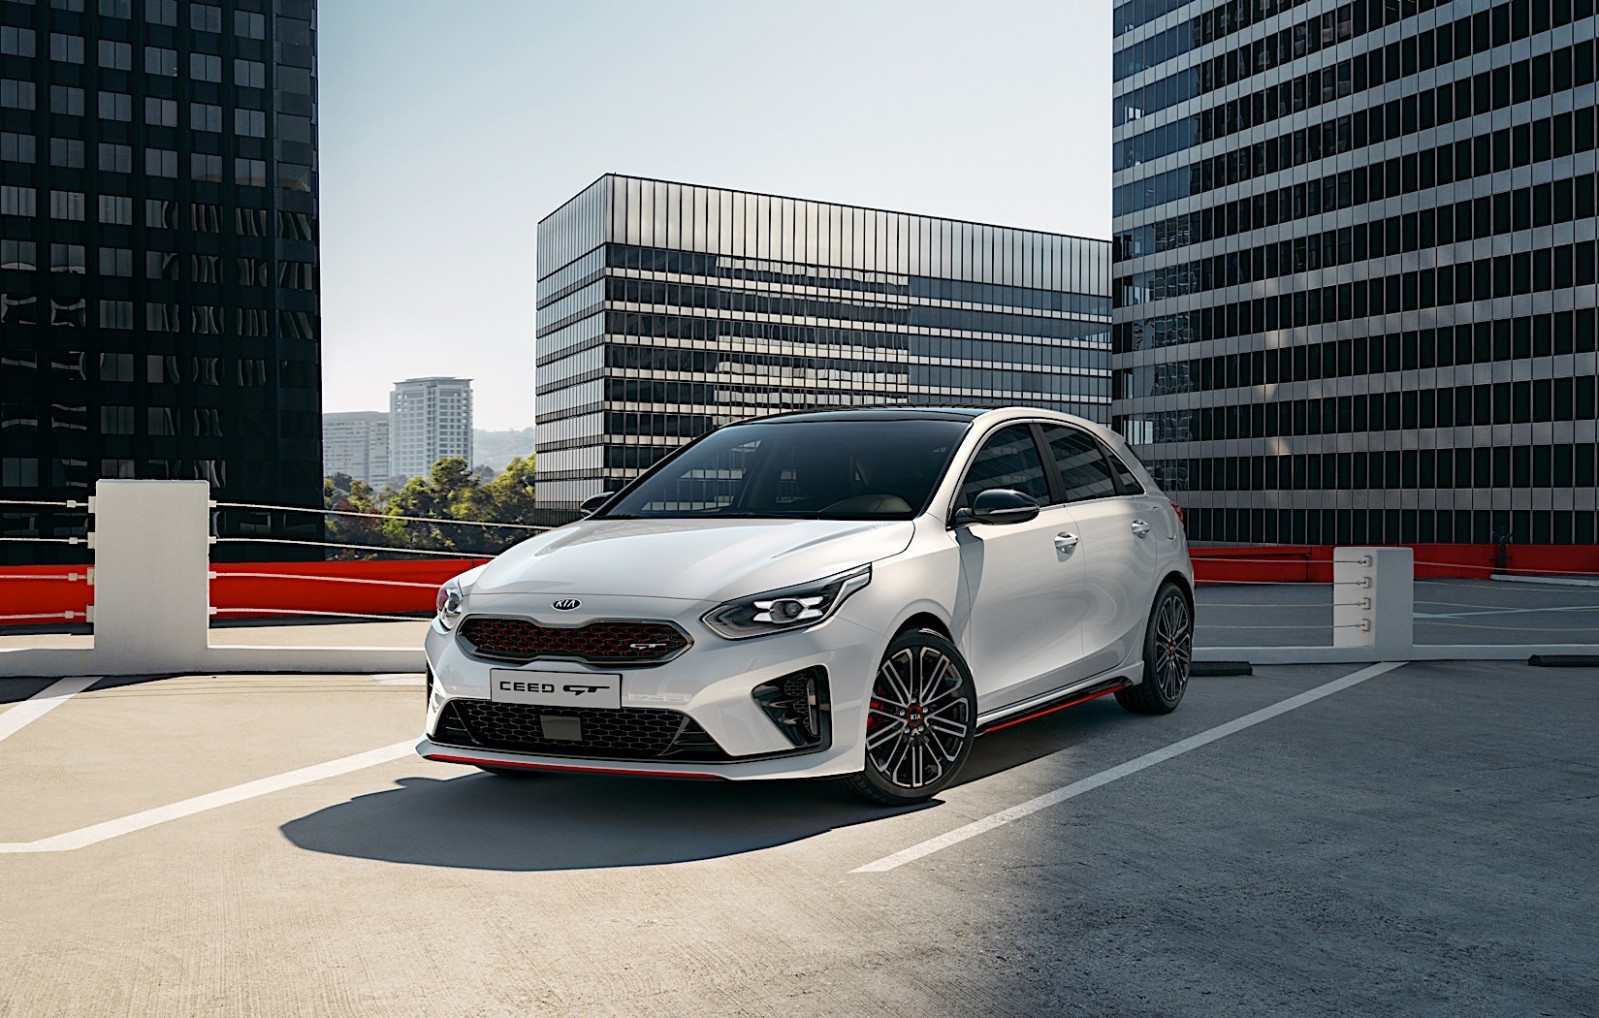 New Kia Forte1111 Might Have Hot Version with 11.11 Turbo Engine ...